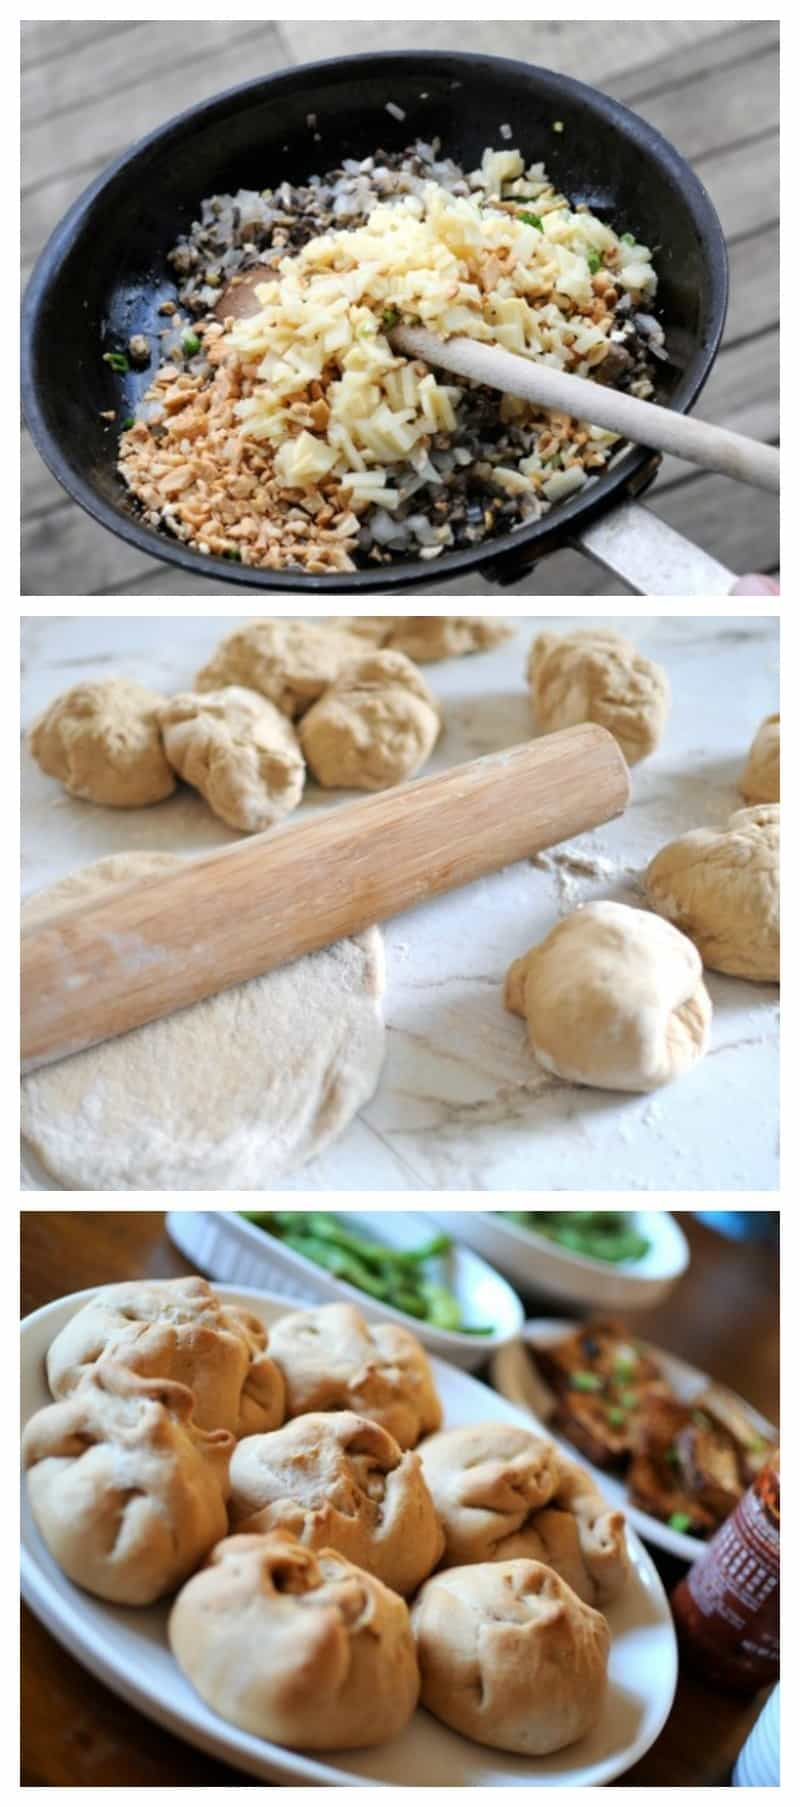 Chinese baked buns recipe- vegetarian - whole wheat - healthy - yummy